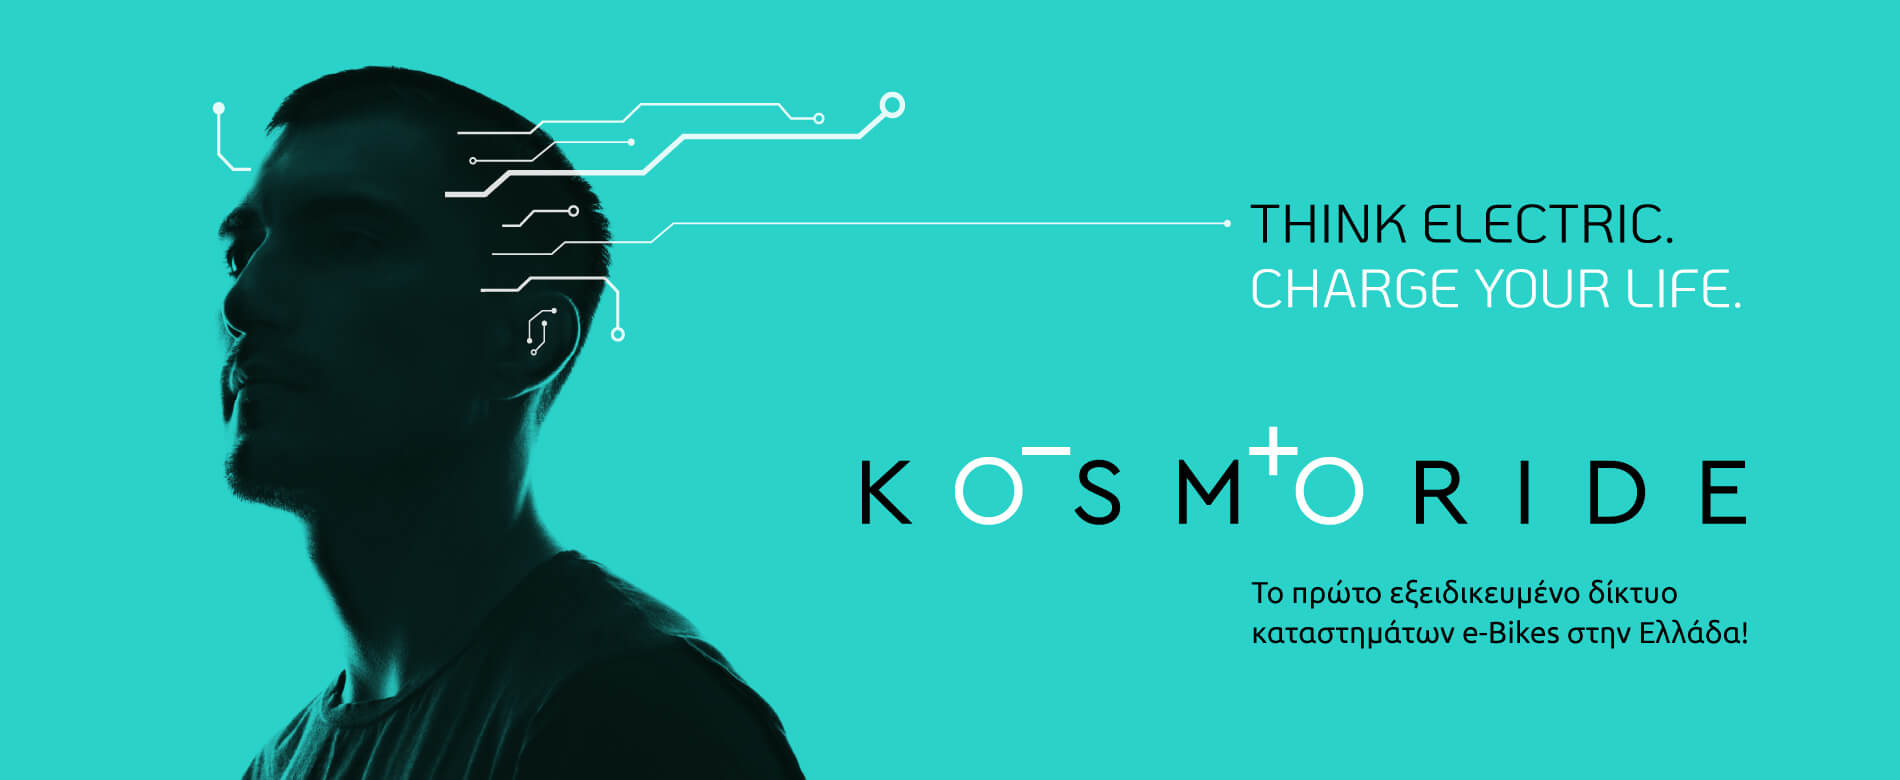 Kosmoride. Think electric. Charge your life.